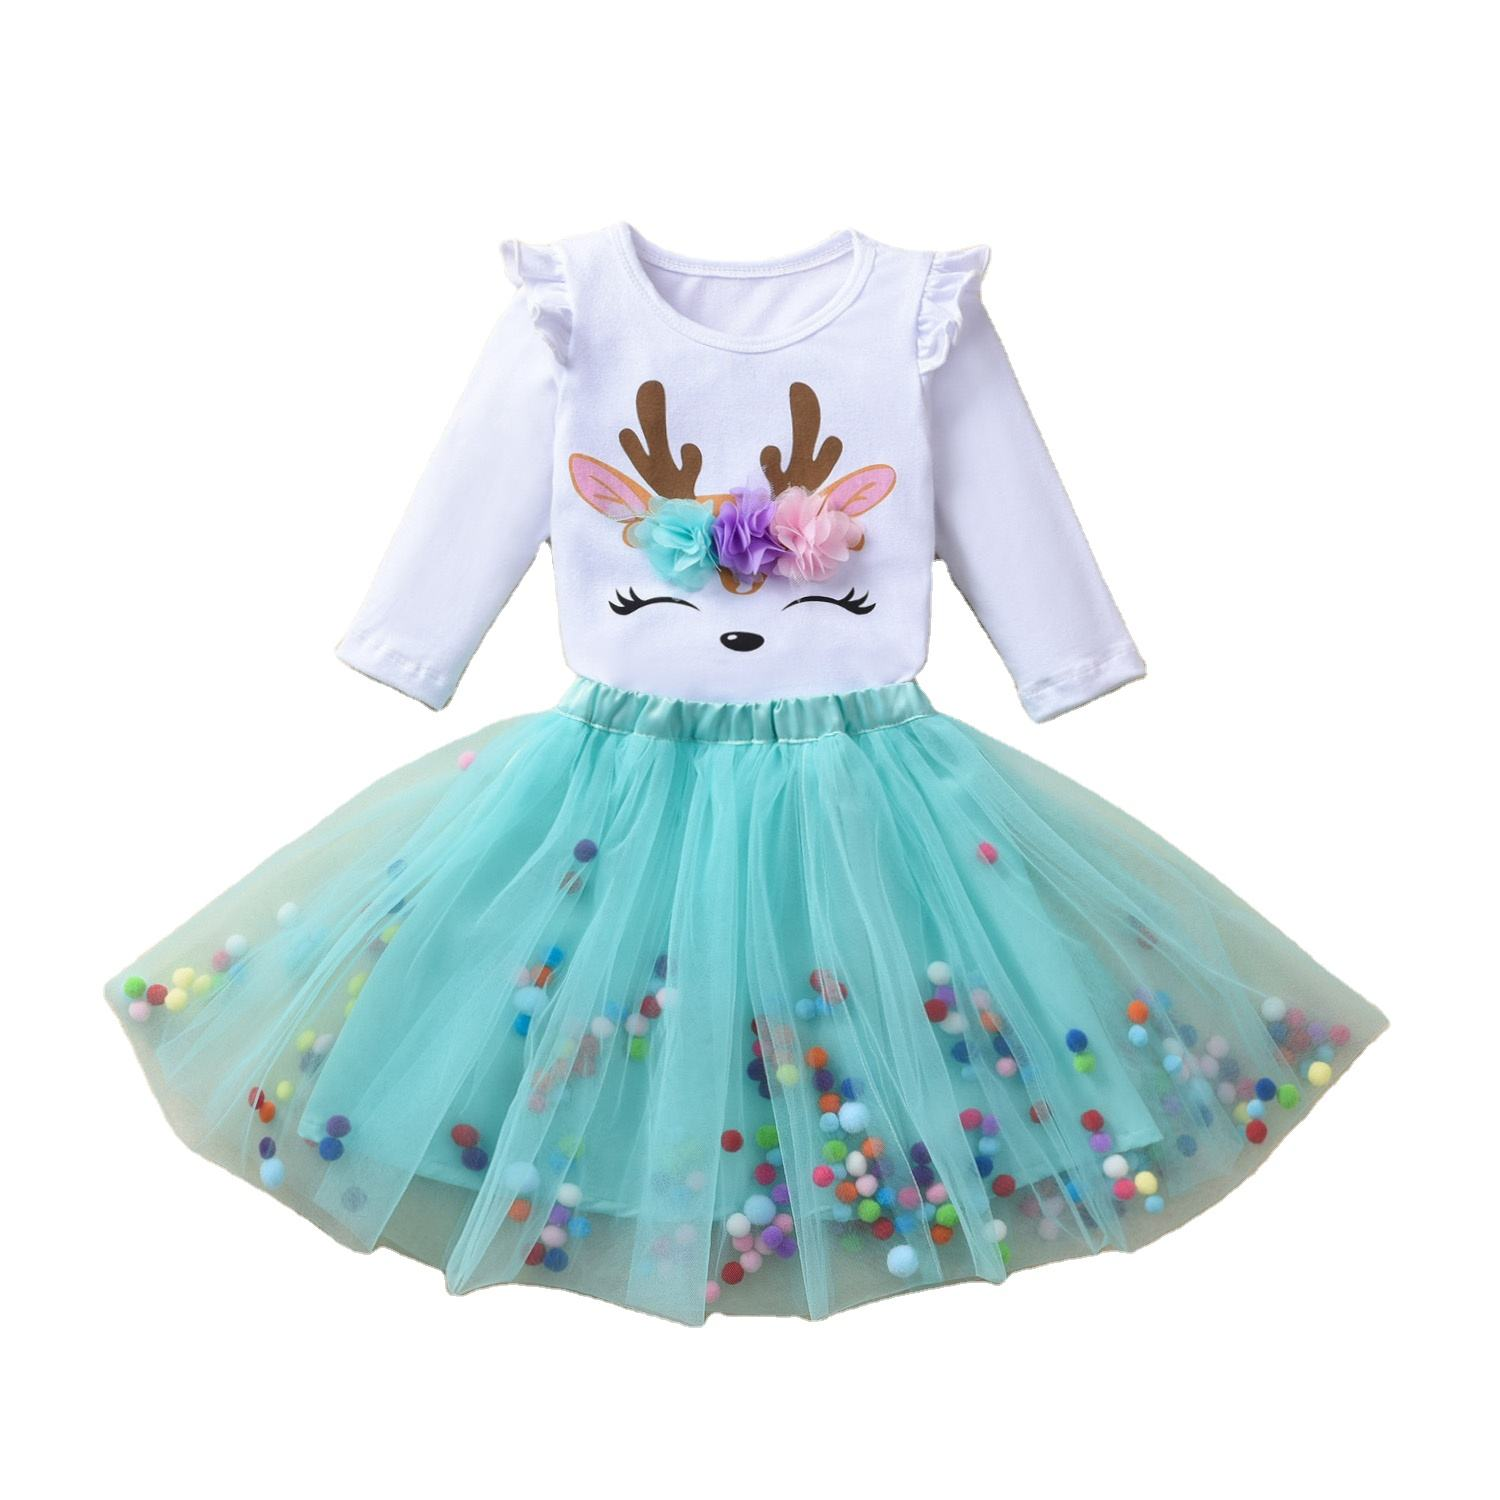 Baby Girl Dress Unicorn Party Girls Tutu Dress Toddler Kids Clothes Baby 1st Birthday Outfits infantil vestido baby girl dress